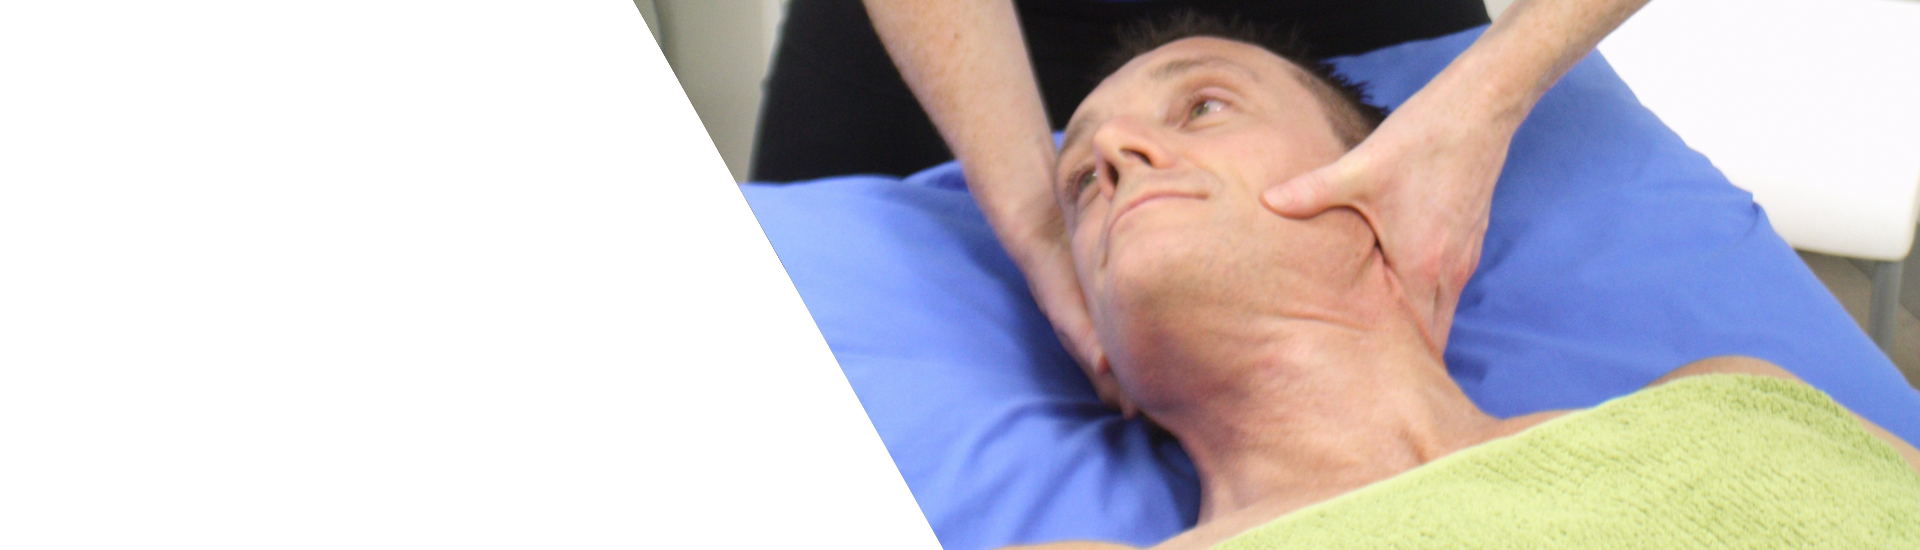 banner-services-osteopathy-2